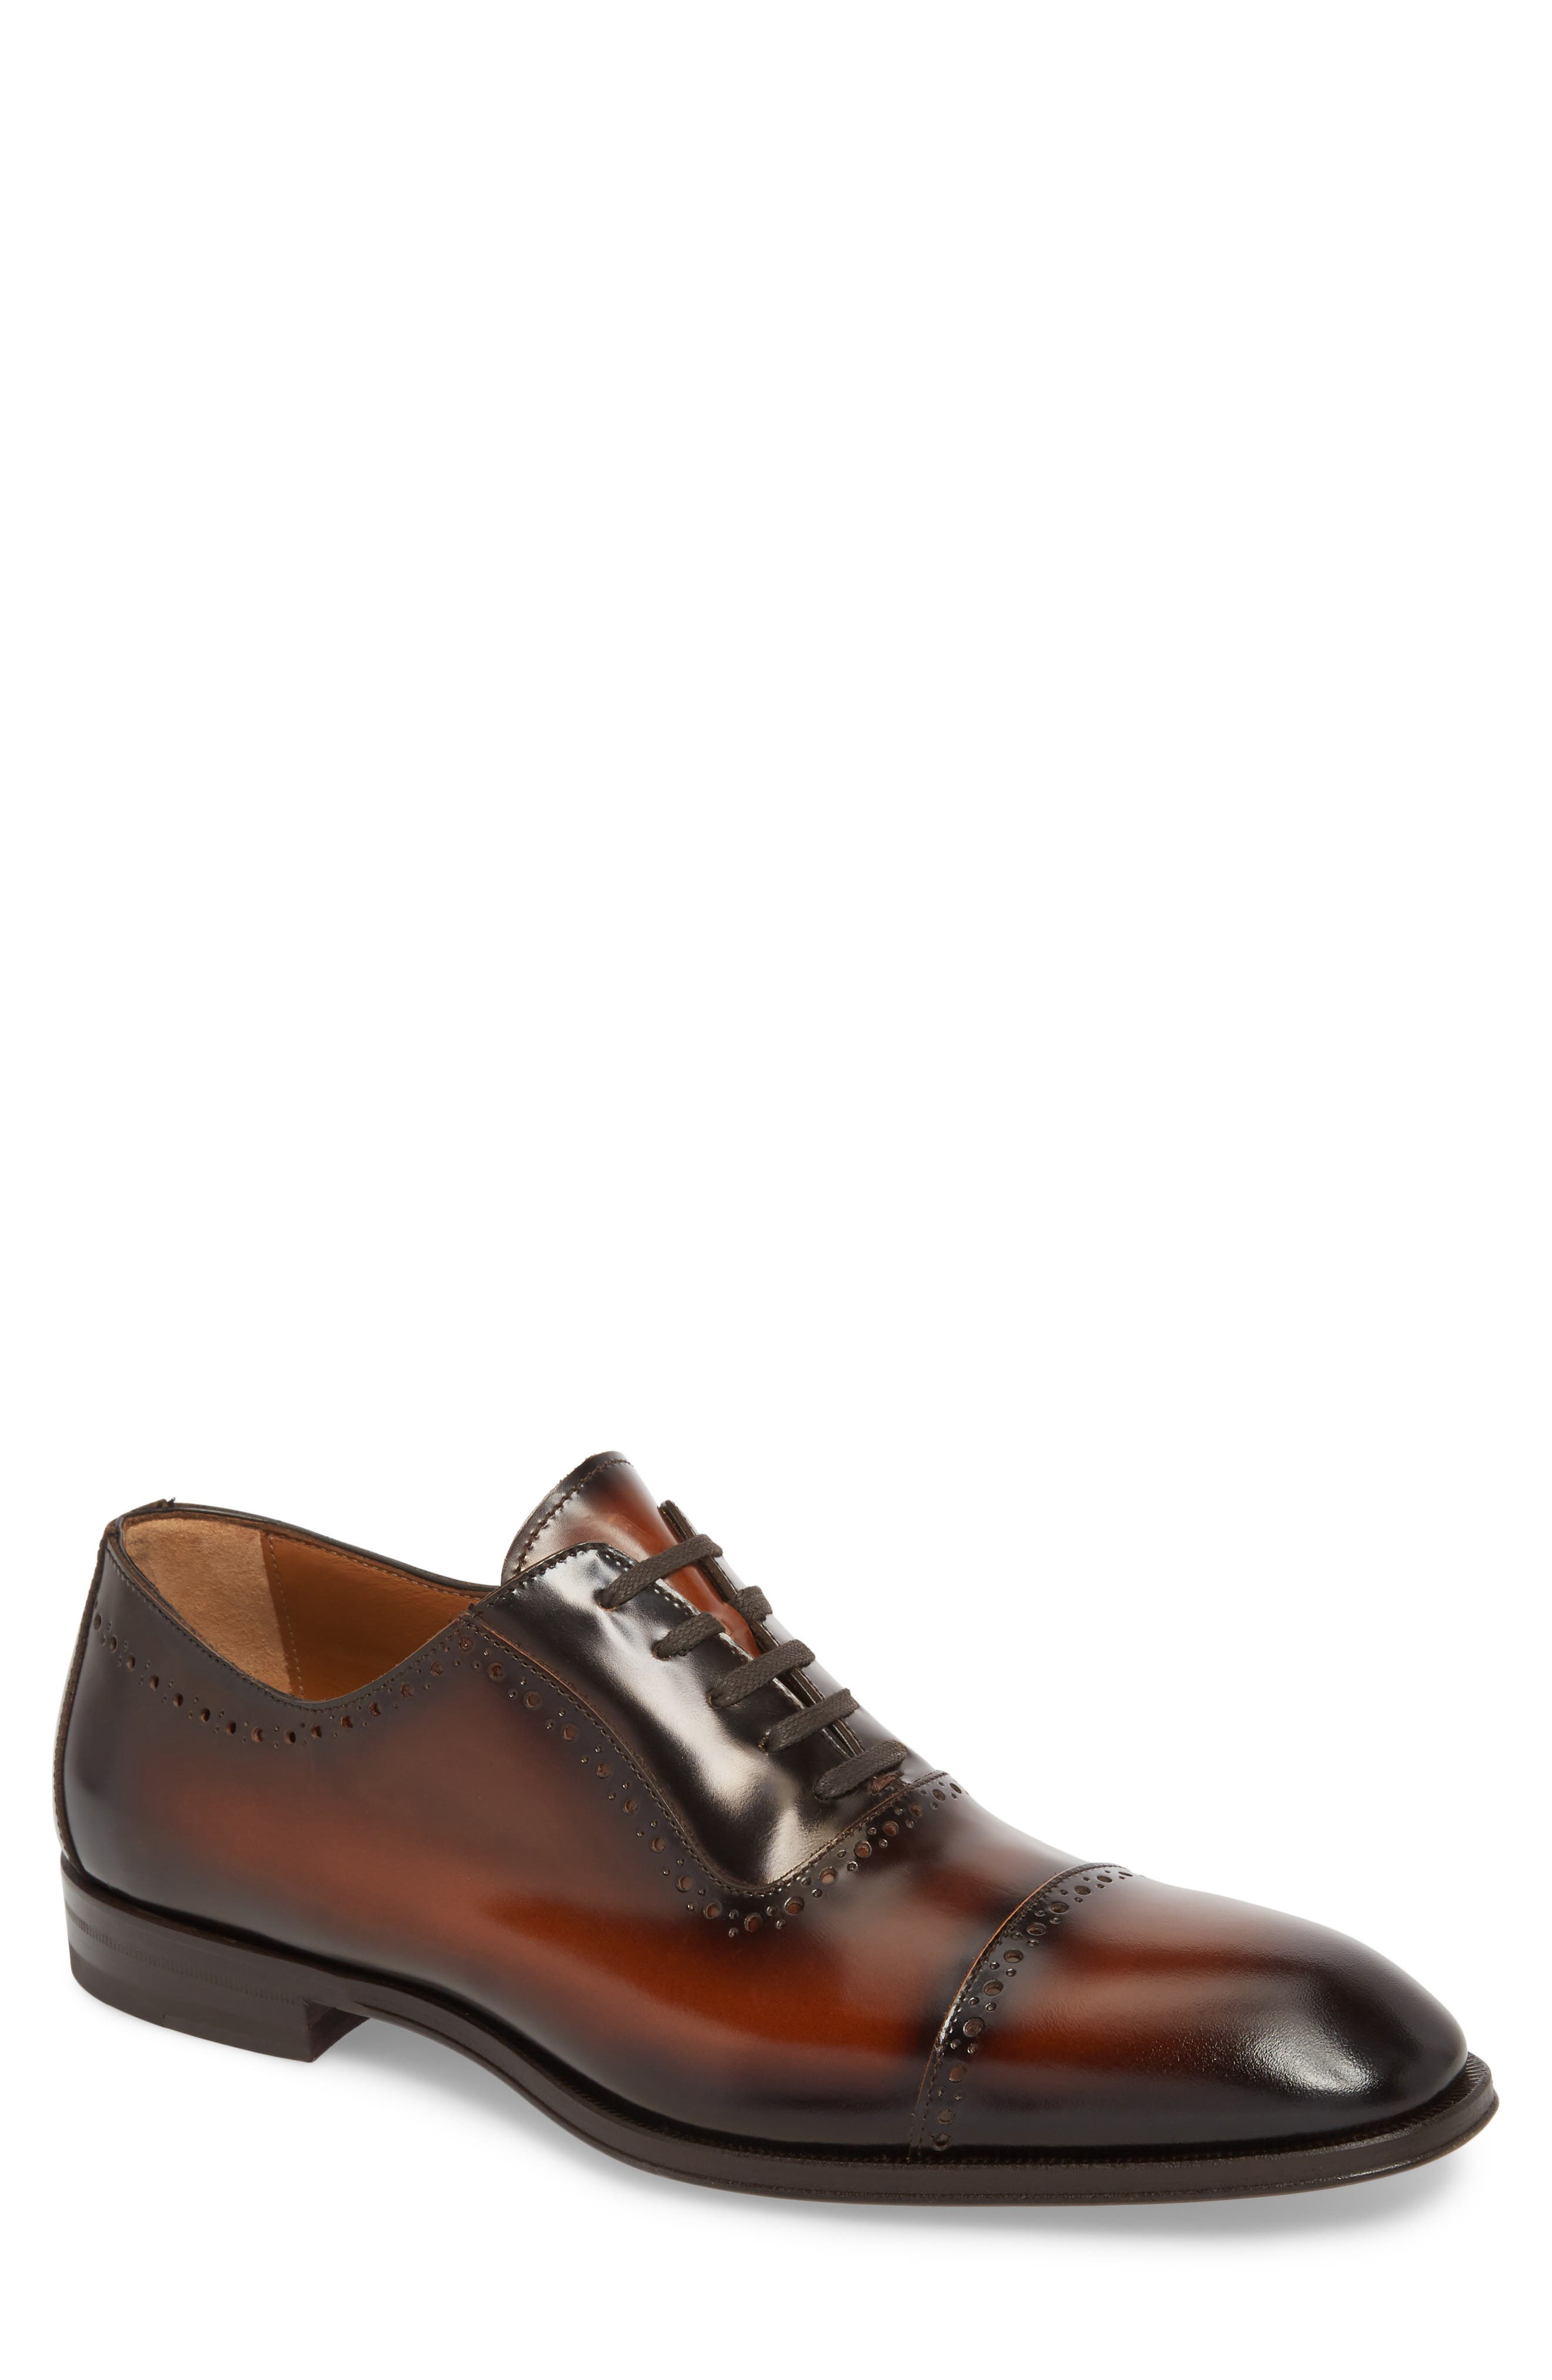 BRUNO MAGLI, Lucca Cap Toe Oxford, Main thumbnail 1, color, COGNAC